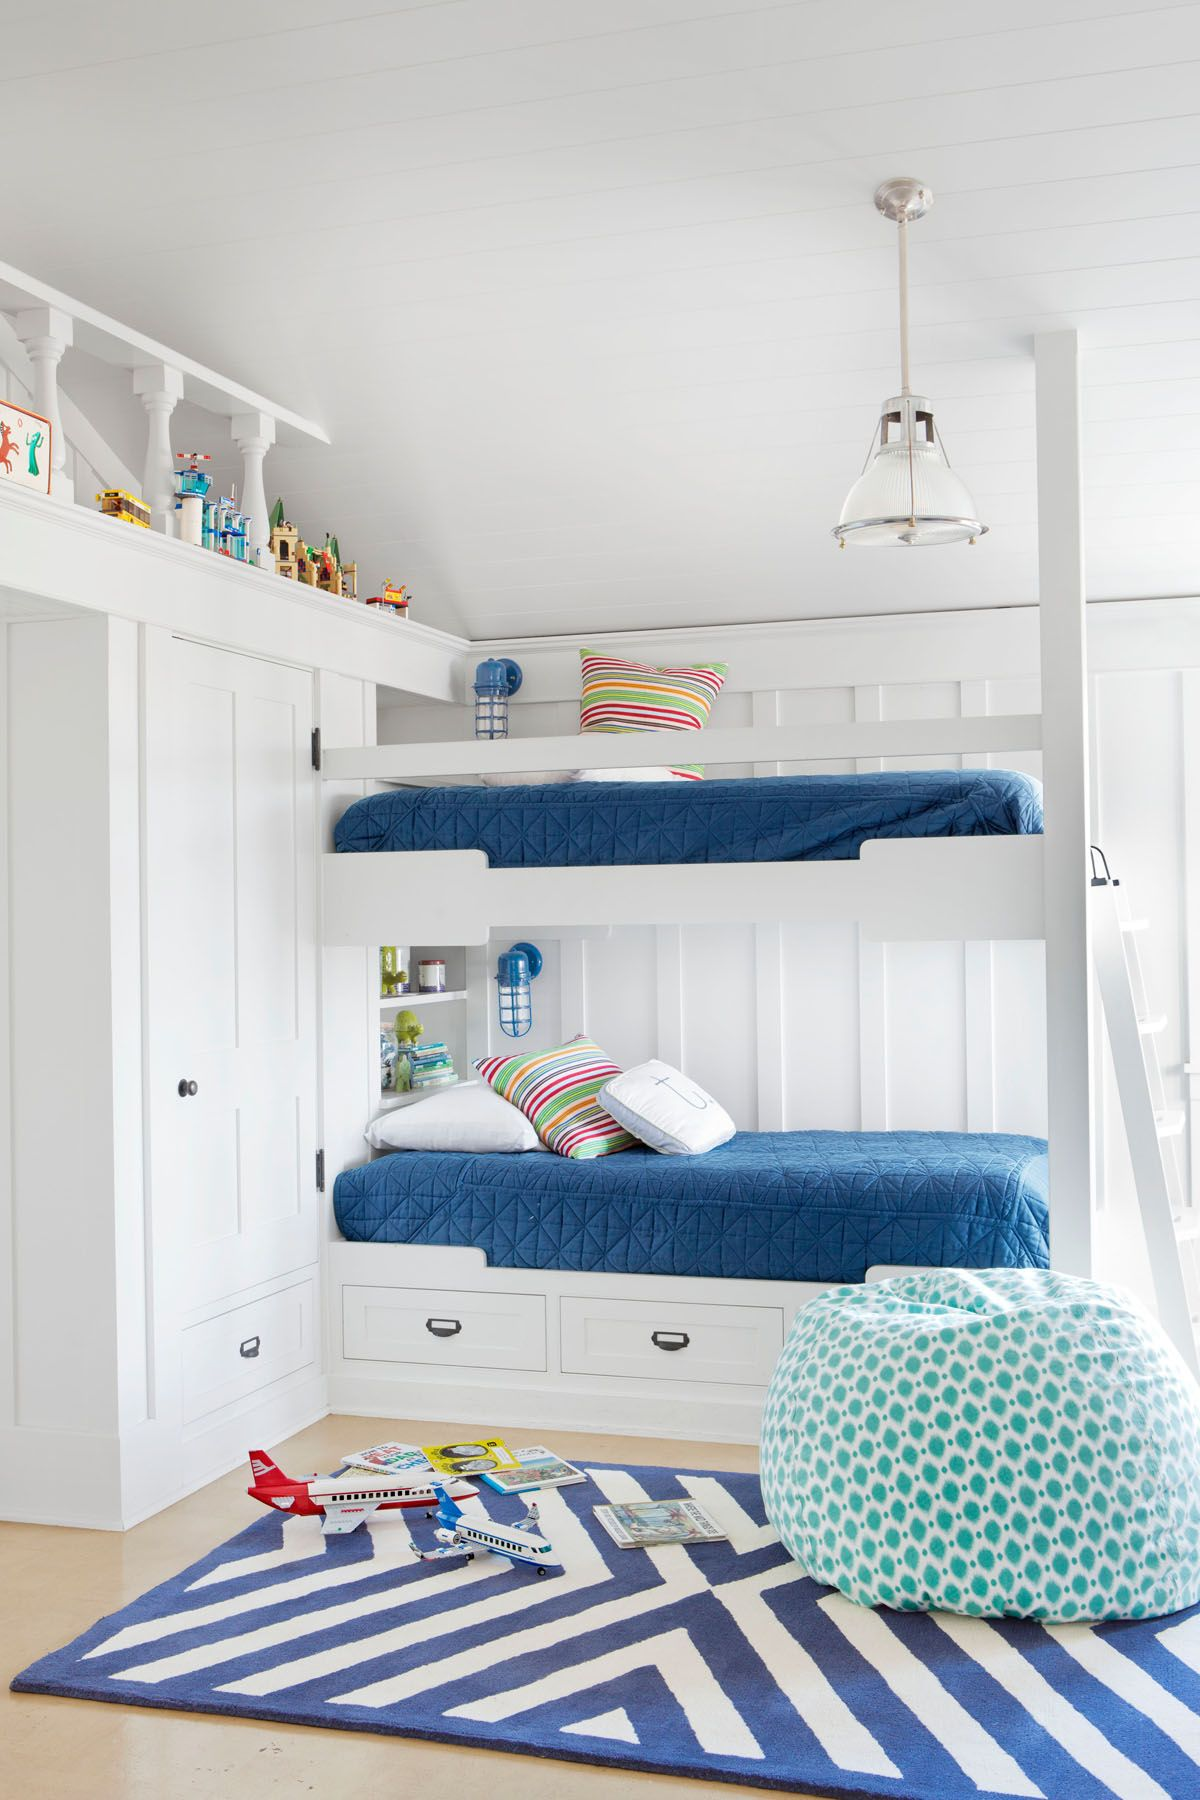 14 Best Boys Bedroom Ideas - Room Decor and Themes for a ... on Small Bedroom Ideas For Boys  id=54151